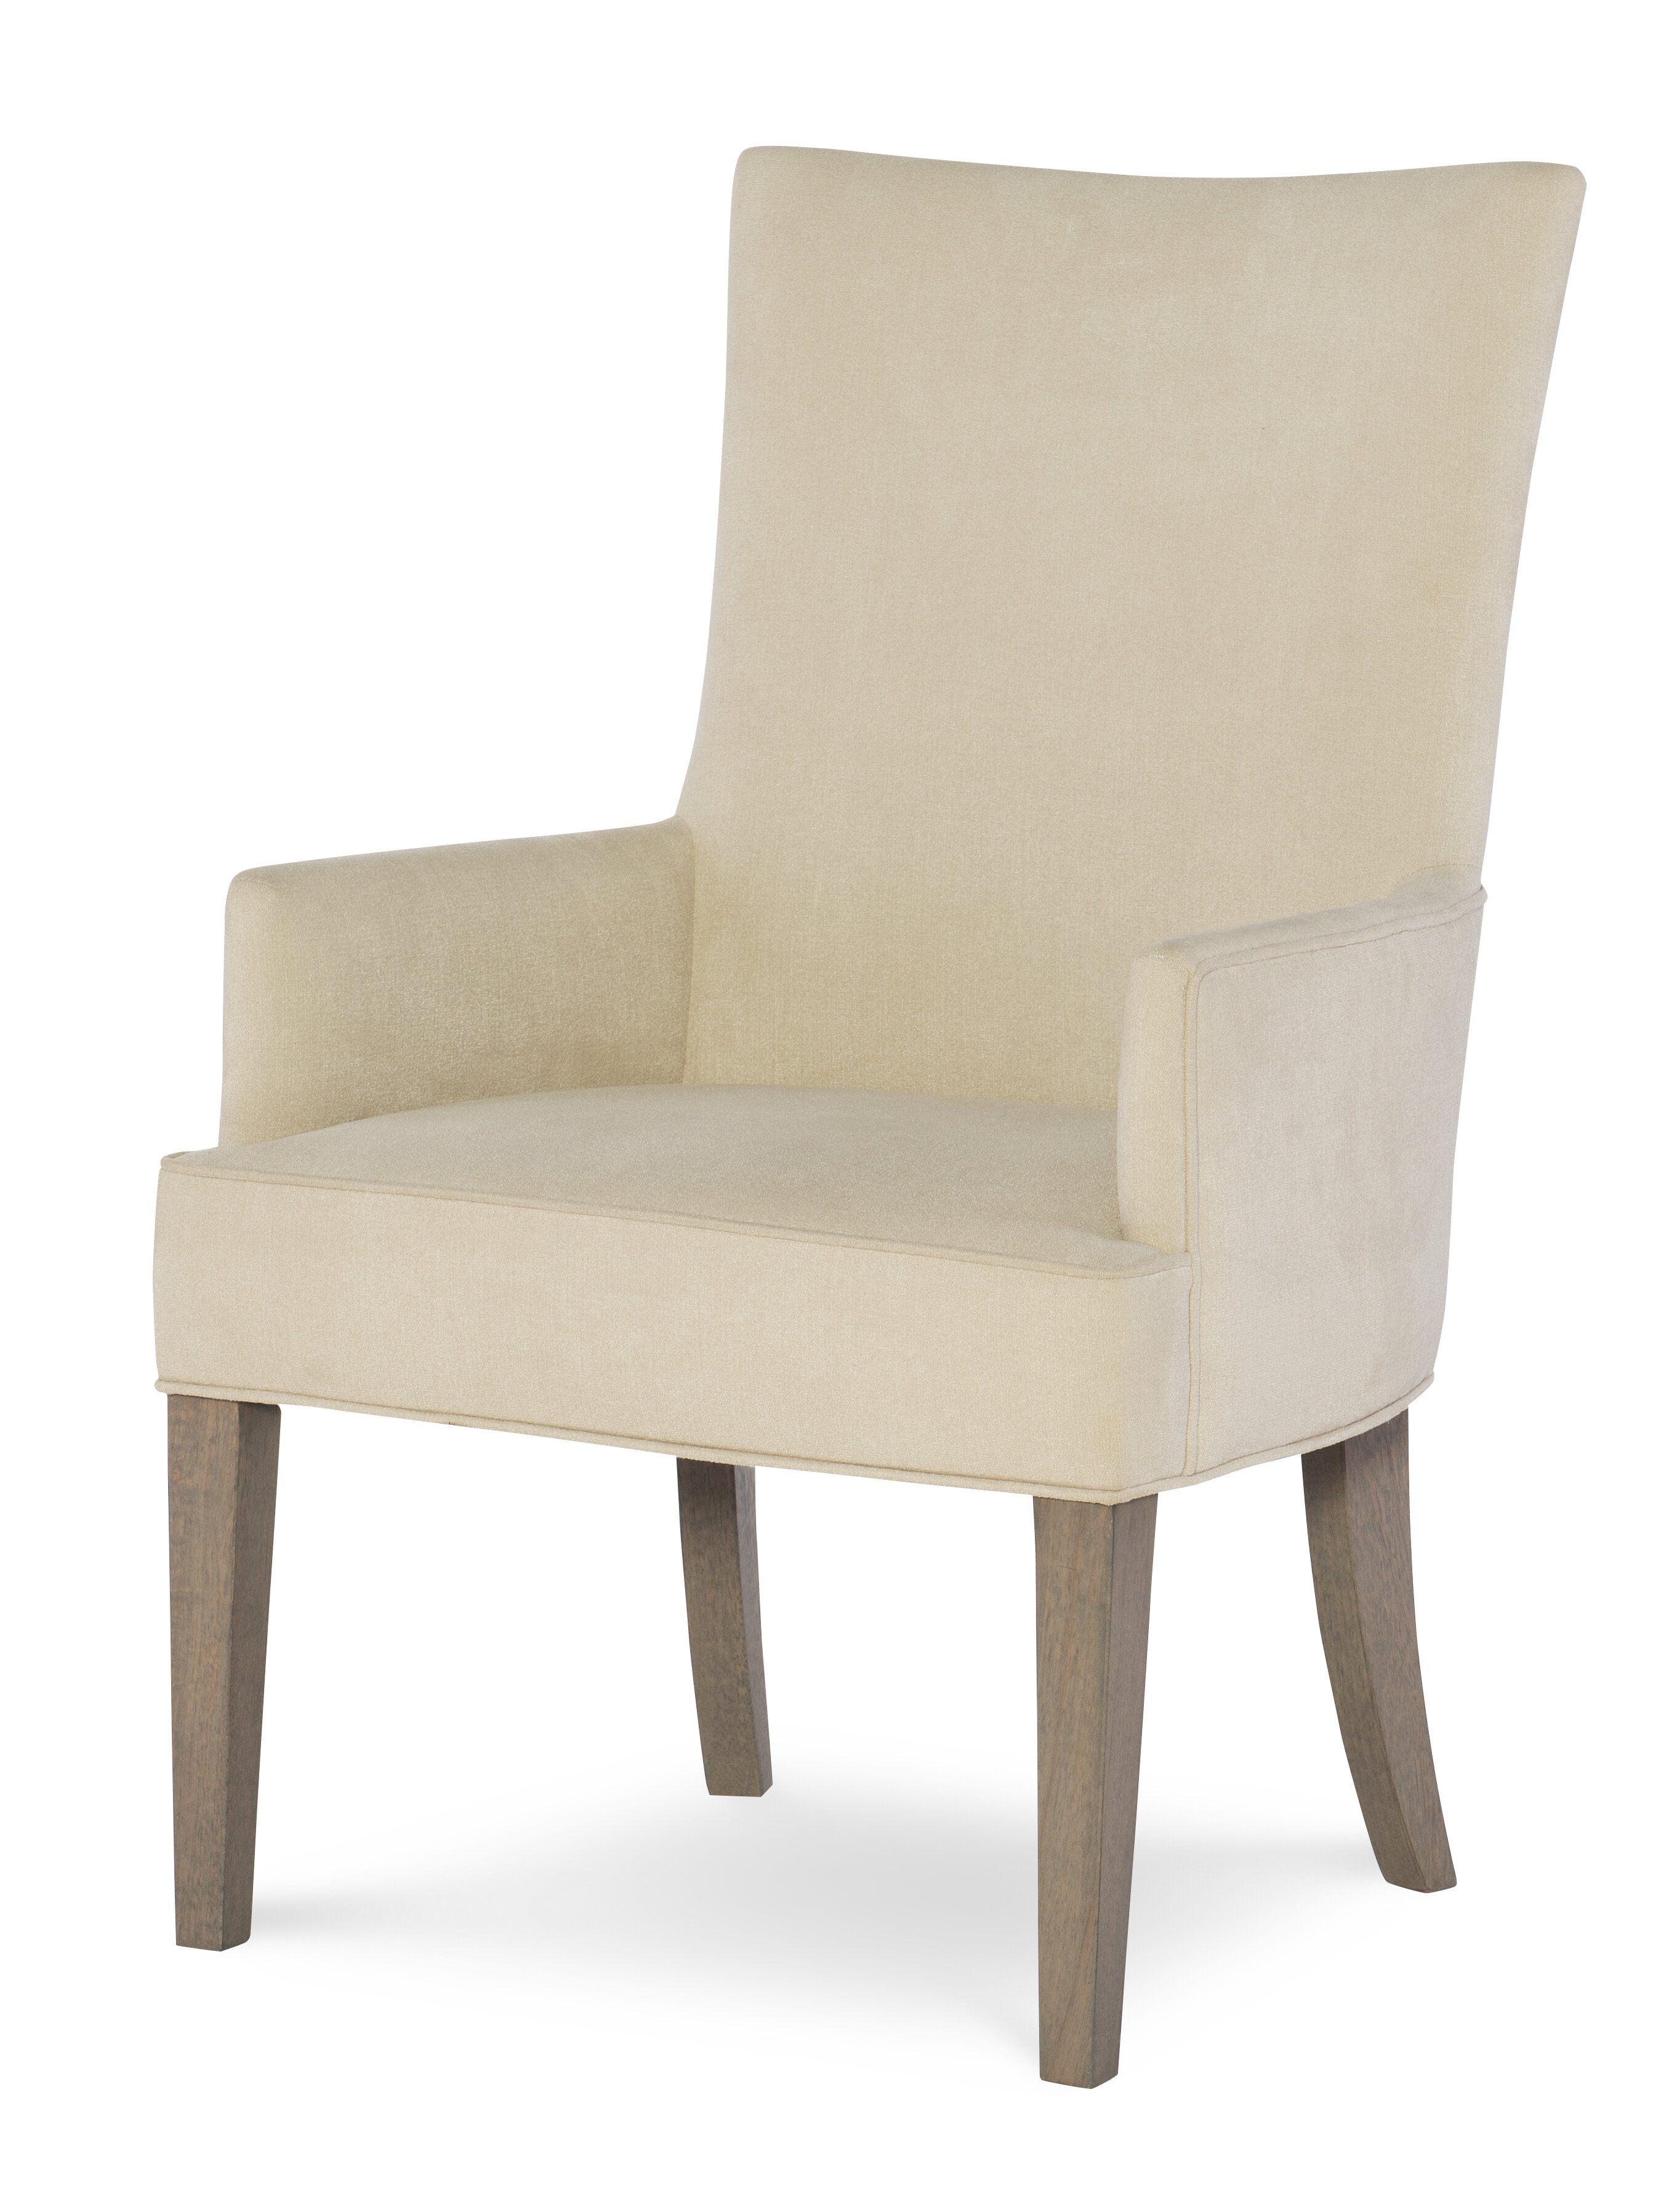 on rachael ray home furniture chairs and tufted back sofa